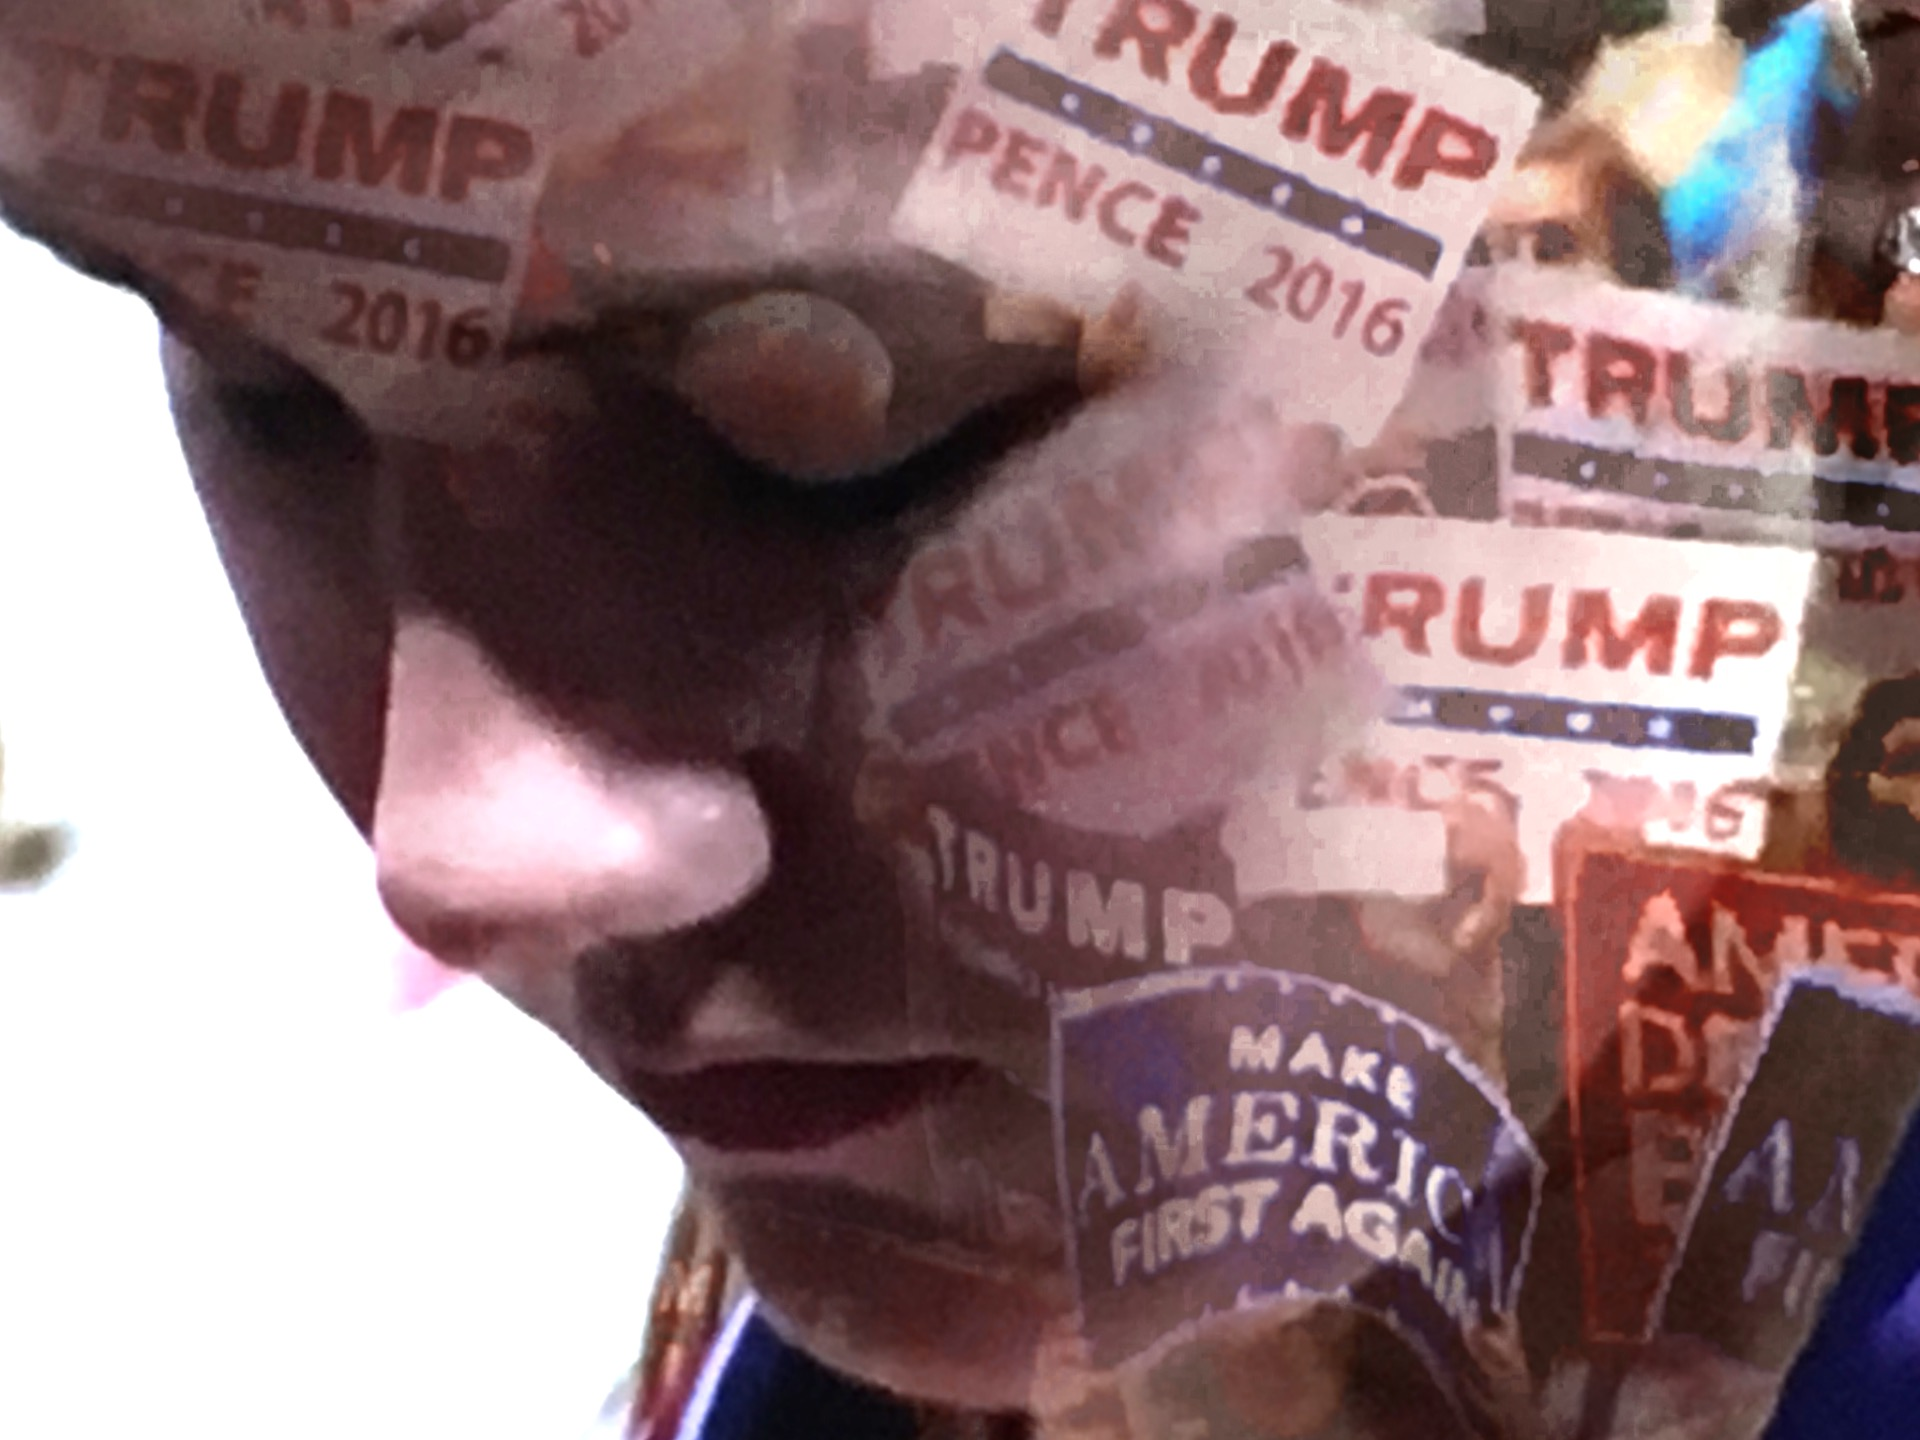 An attendee at the RNC prays. (Composite image by Biz Herman/GroundTruth)